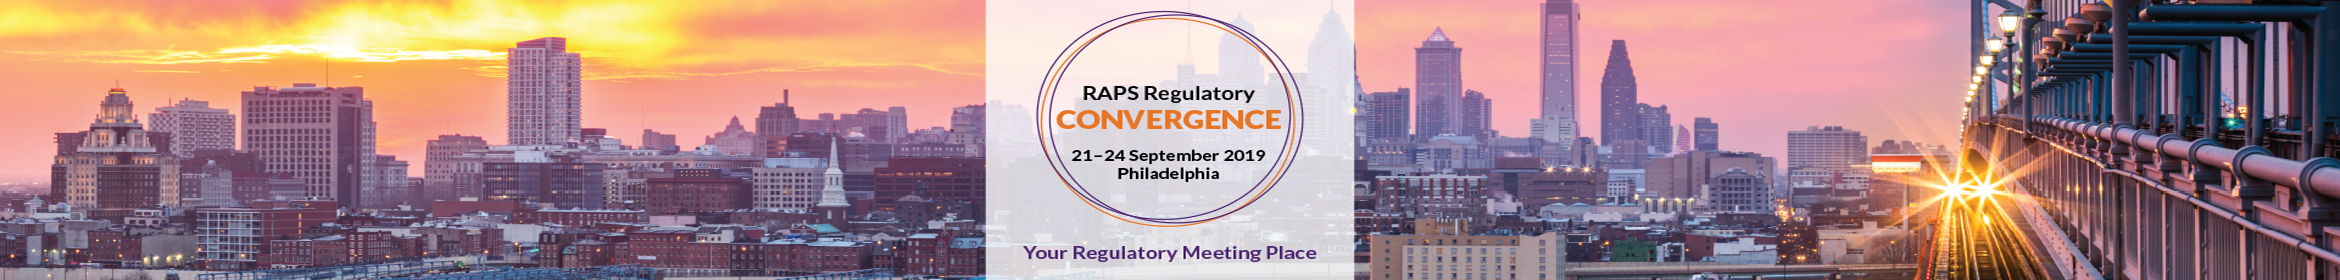 2019 RAPS Regulatory Convergence Main banner